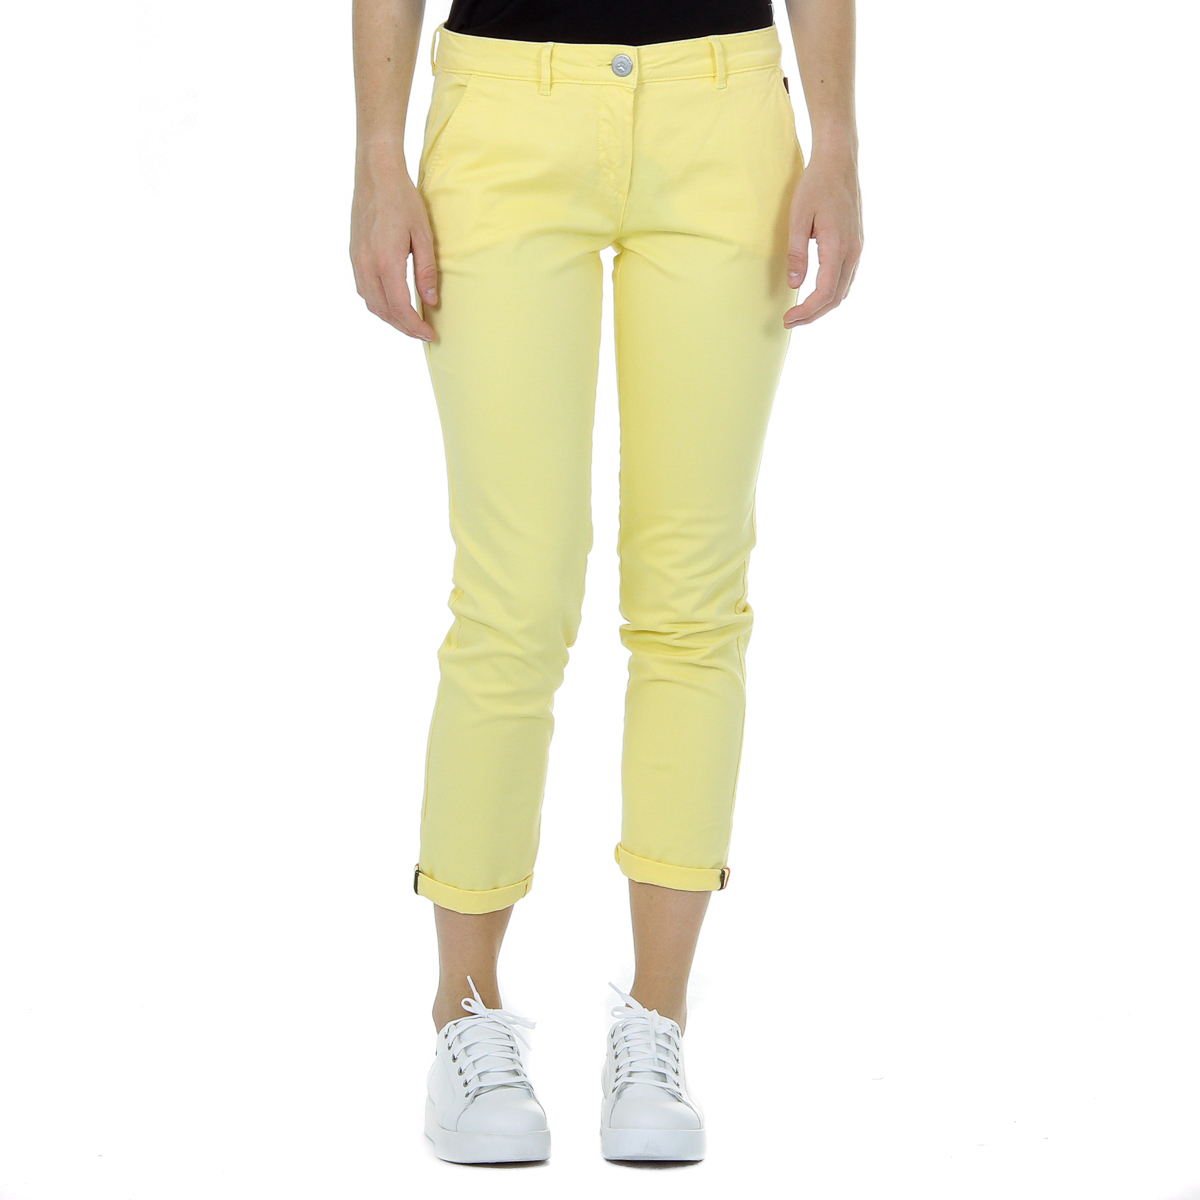 Primary image for Andrew Charles Womens Pants Yellow PENDA